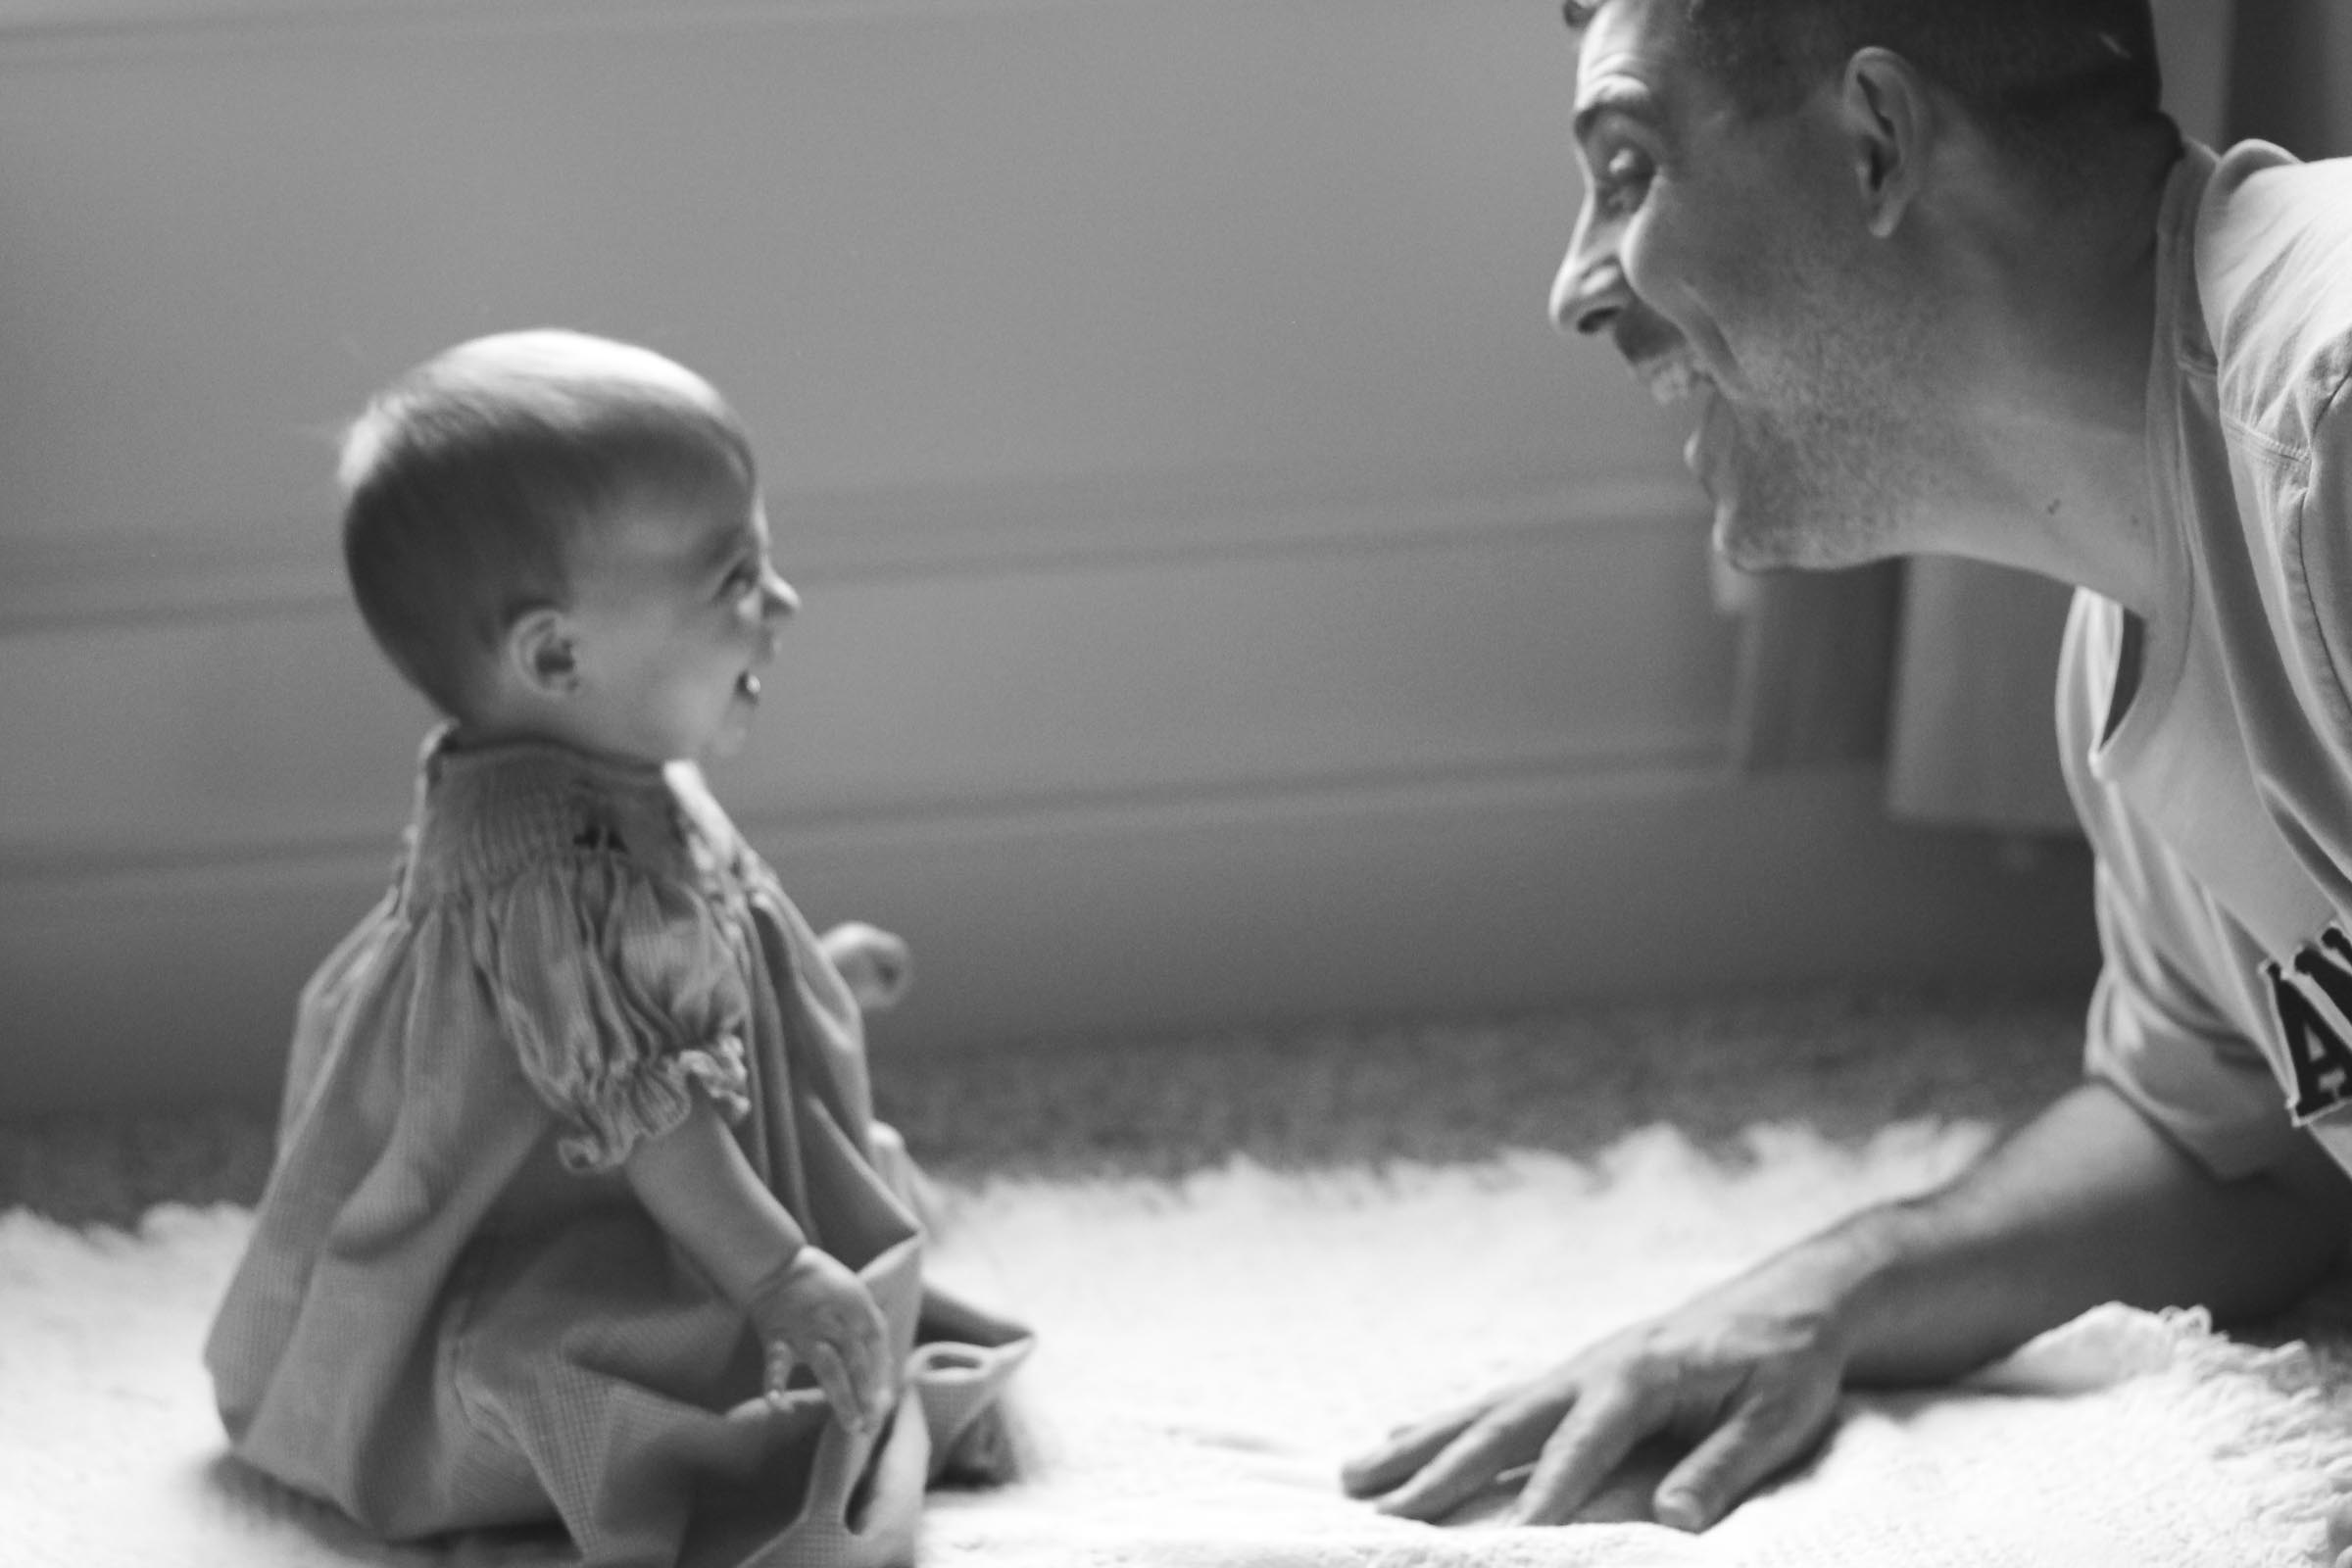 ashley-landry-photography-raymond-09-2016-27-of-41